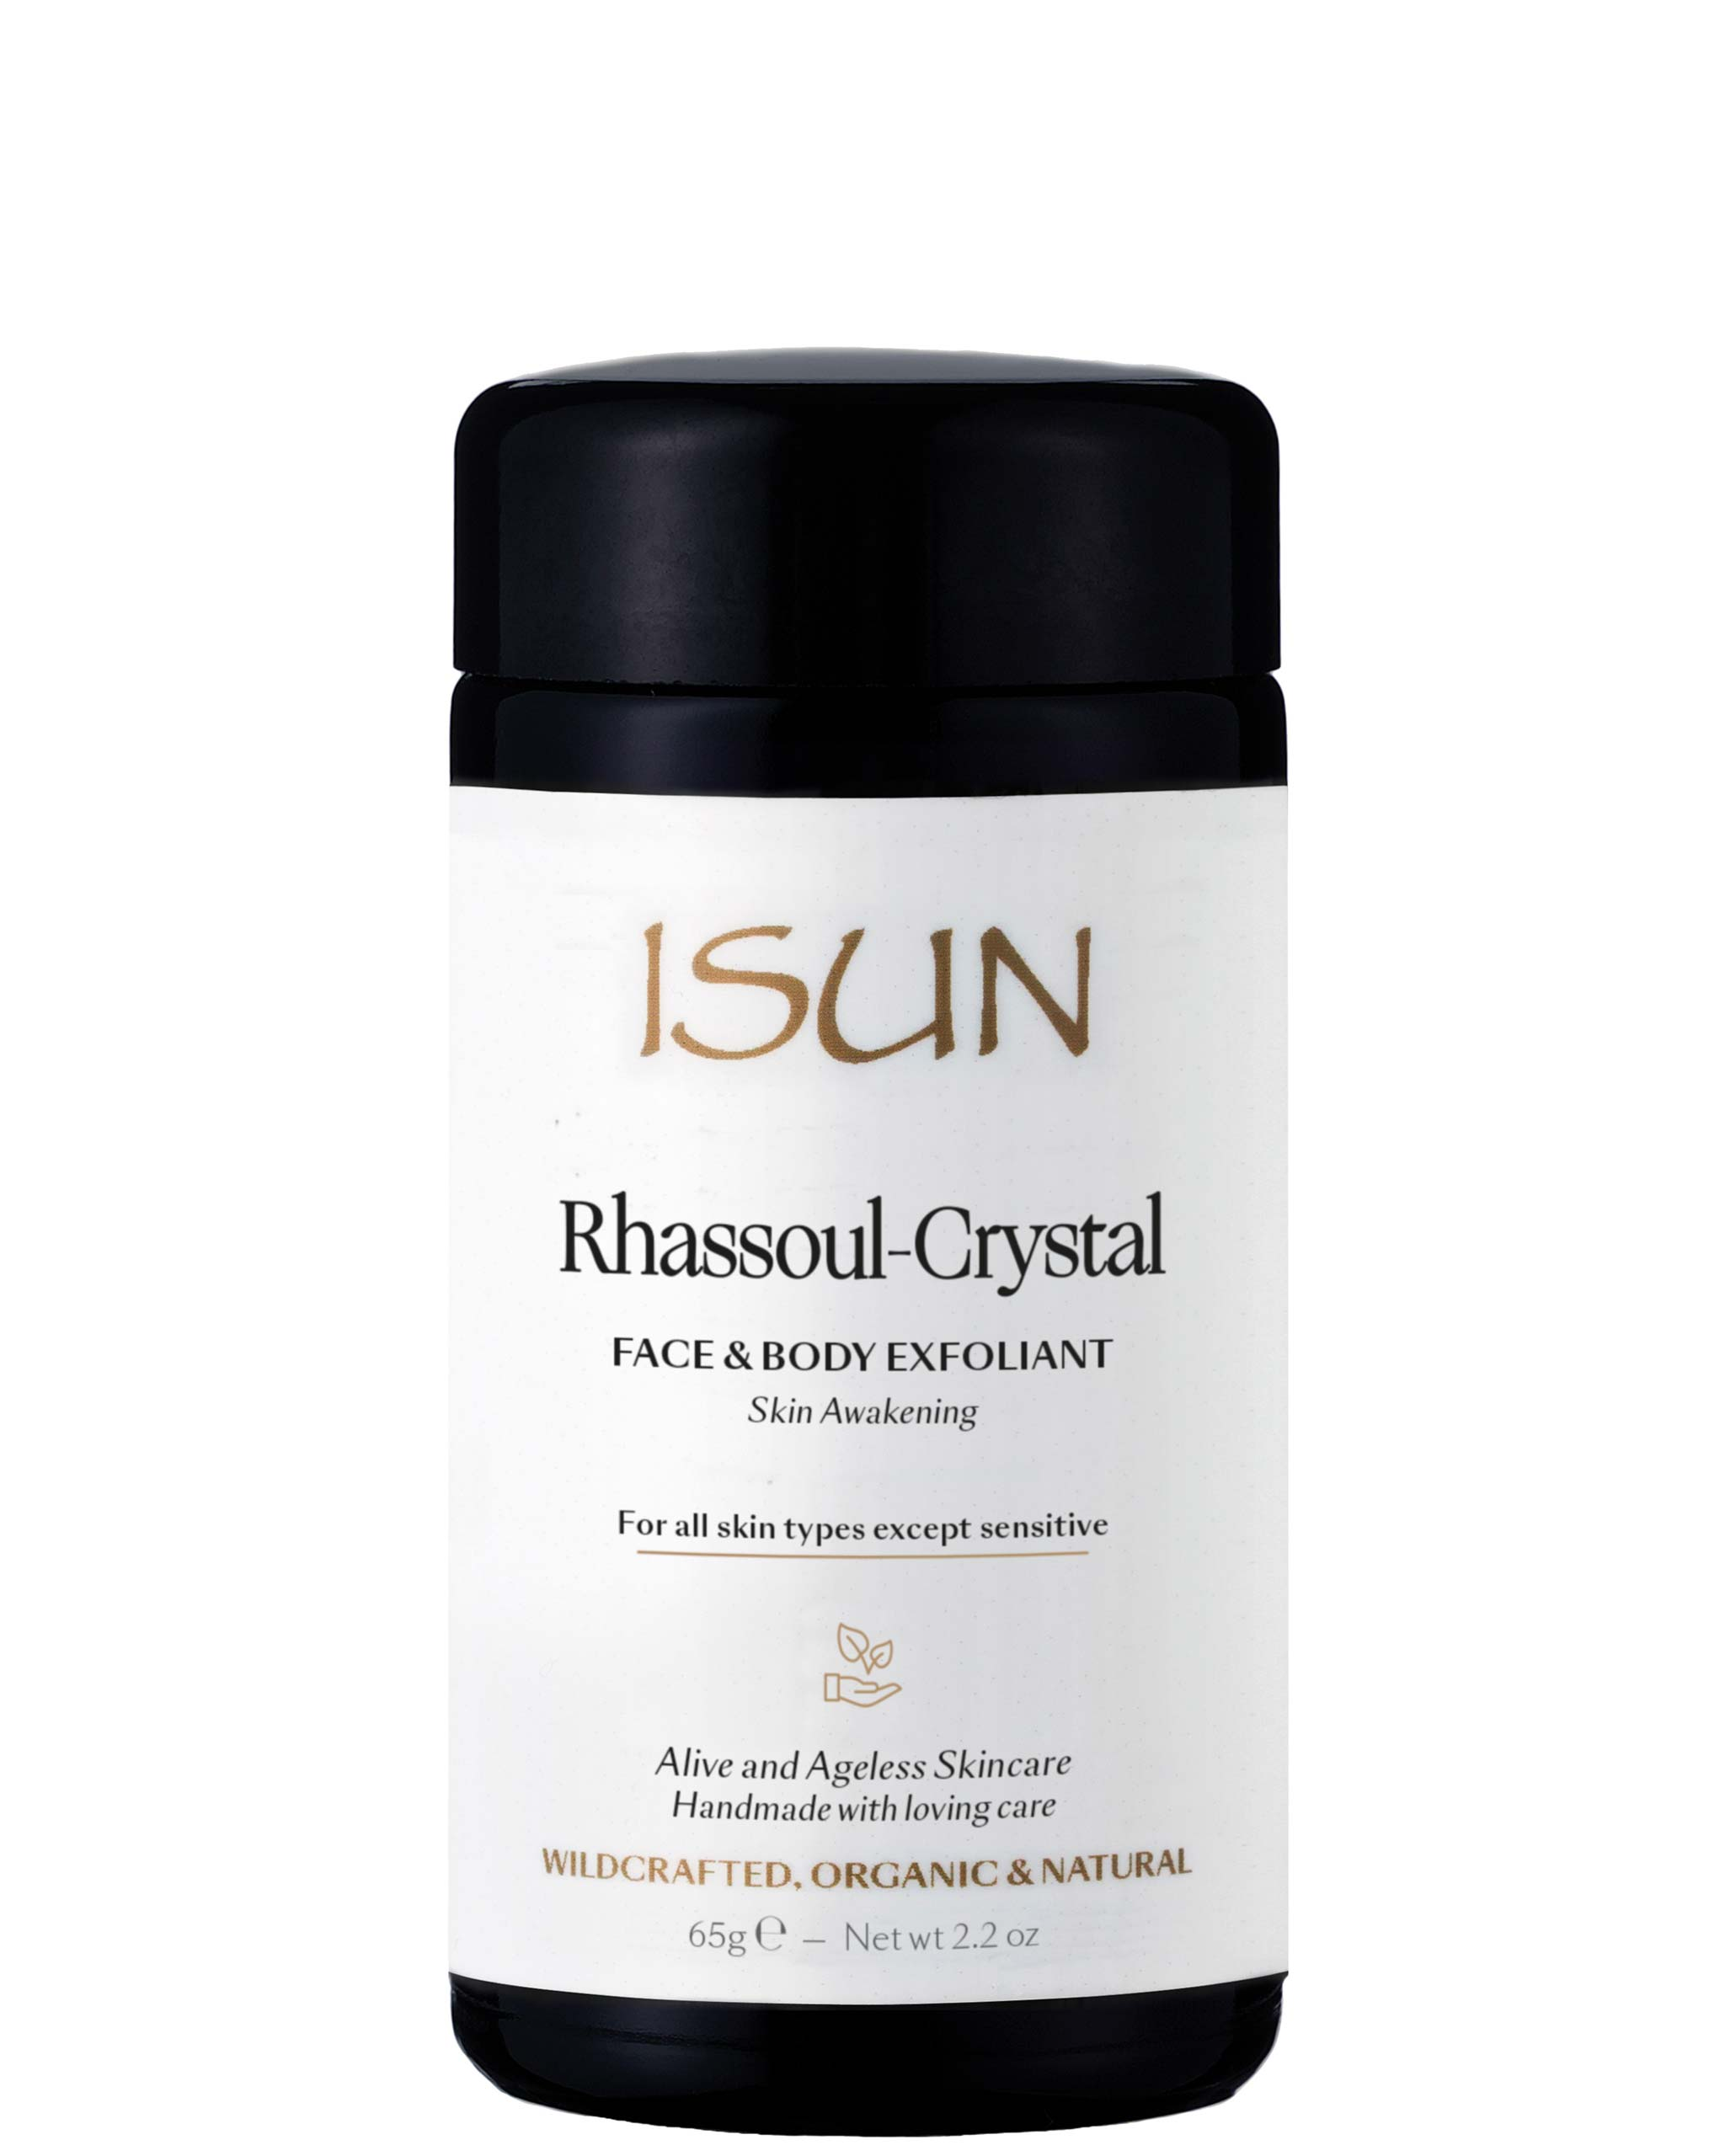 ISUN Rhassoul-Crystal / Face & Body Exfoliant 100ml, ISUN - ShopConsciousBeauty.com